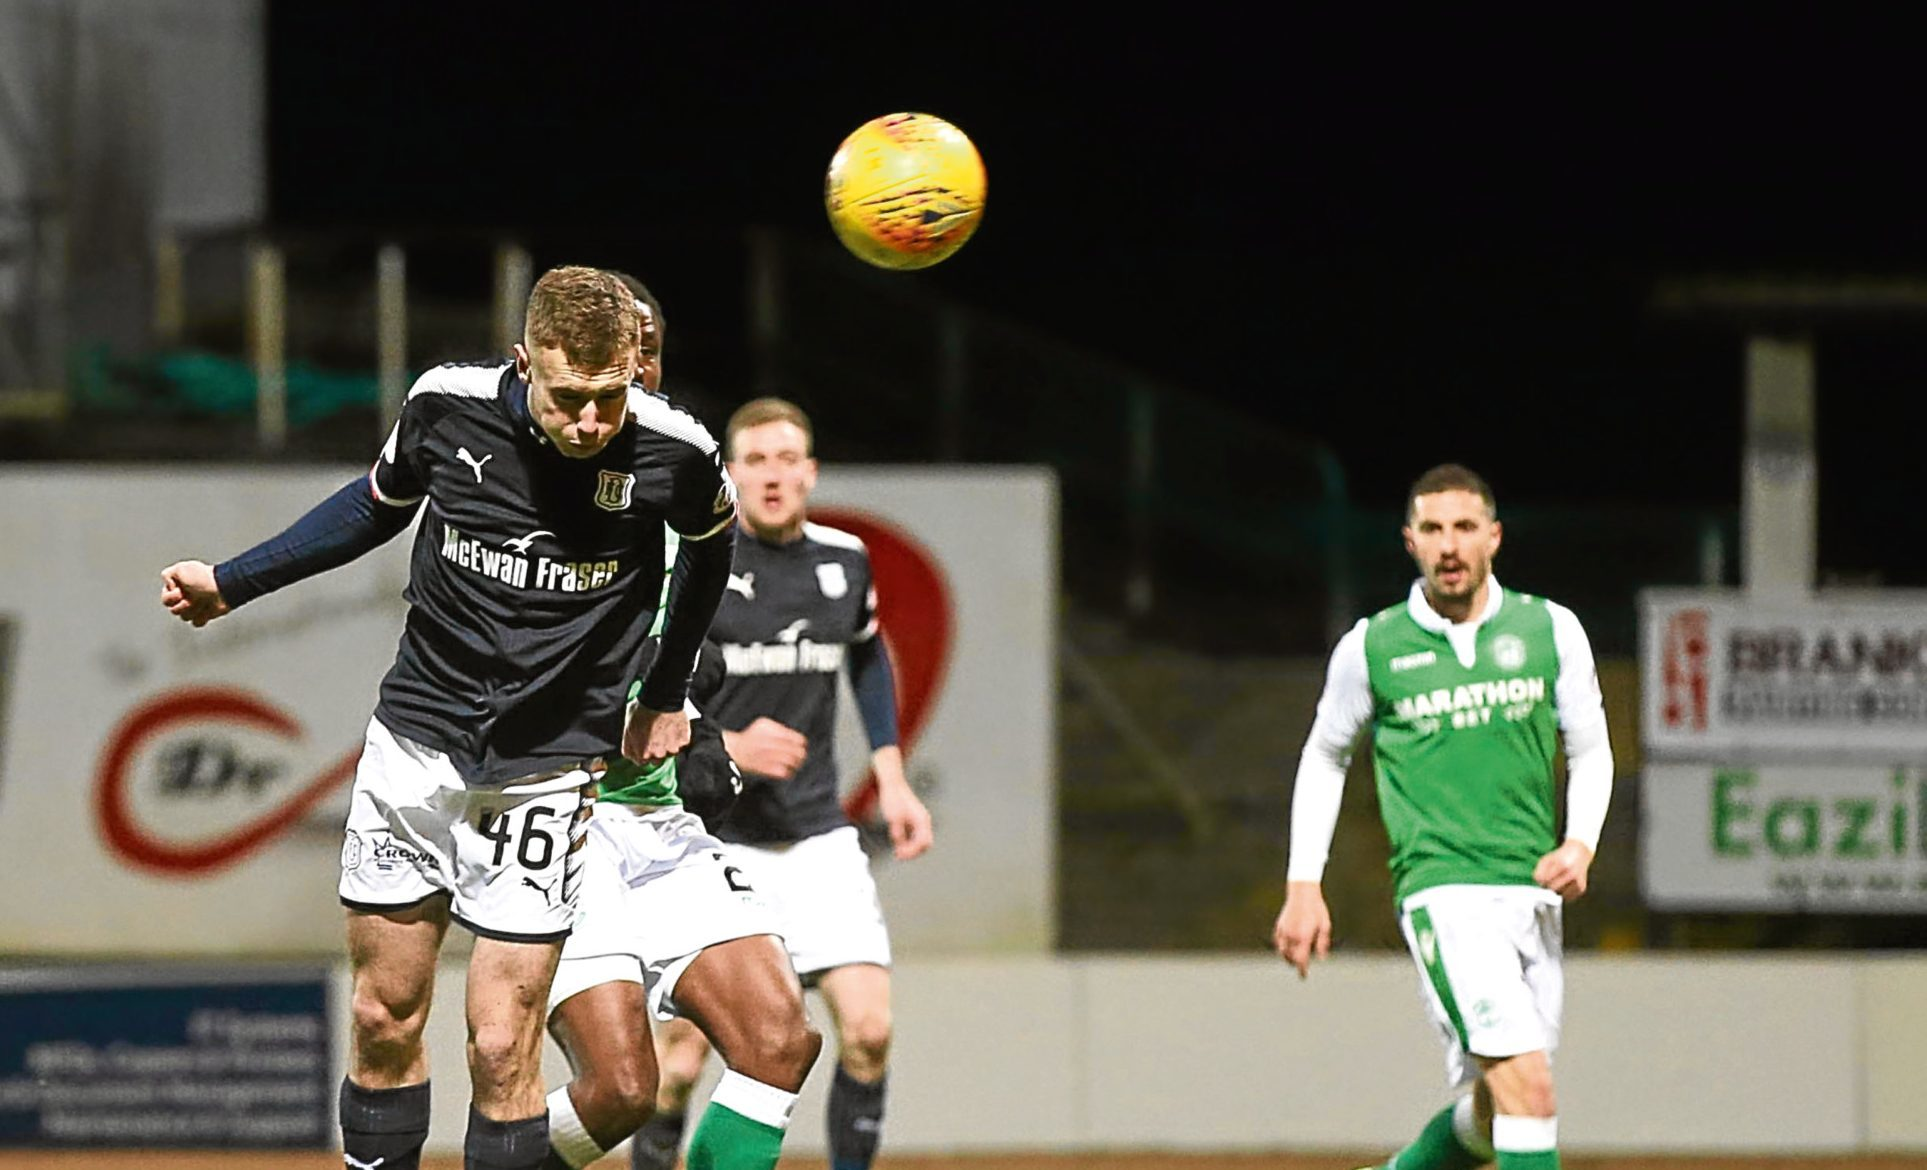 Young striker Matty Henvey had his chance to notch a first senior goal but powered his header wide in the closing stages of the 1-0 defeat to Hibs.